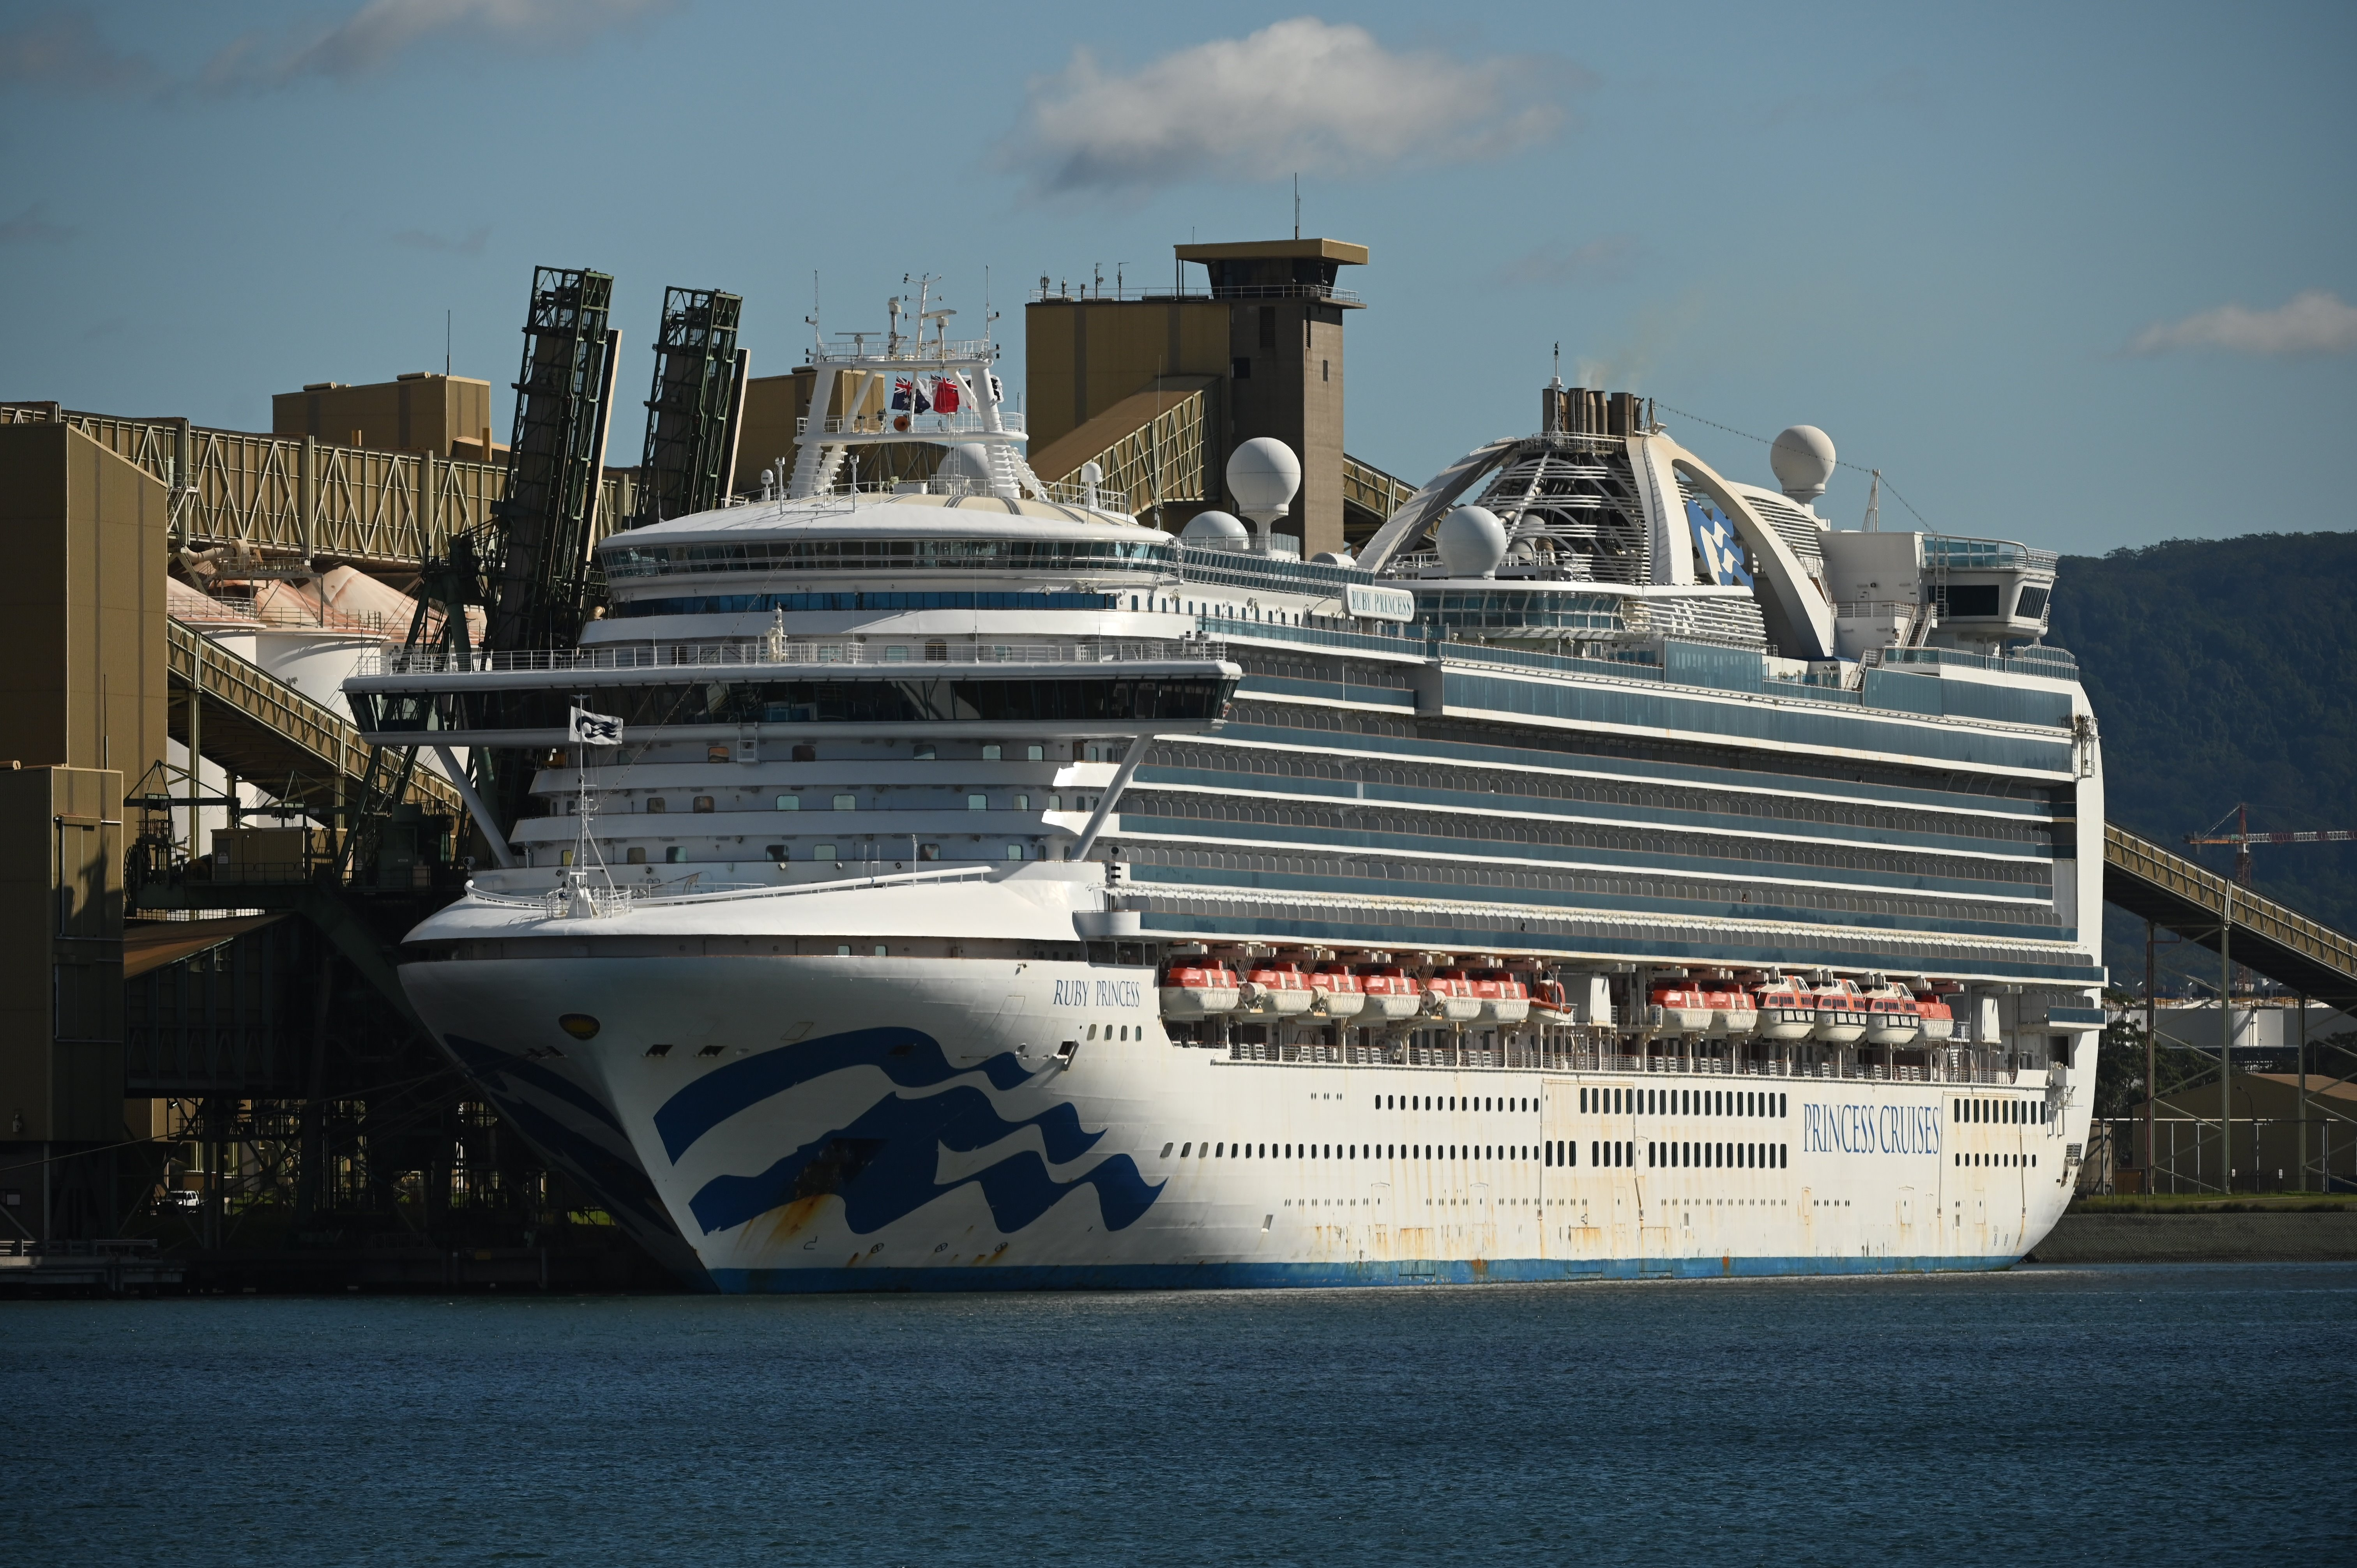 Cruise liner Ruby Princess sits in the harbour in Port Kembla, 80km south of Sydney after coming in to refuel and restock on April 6.